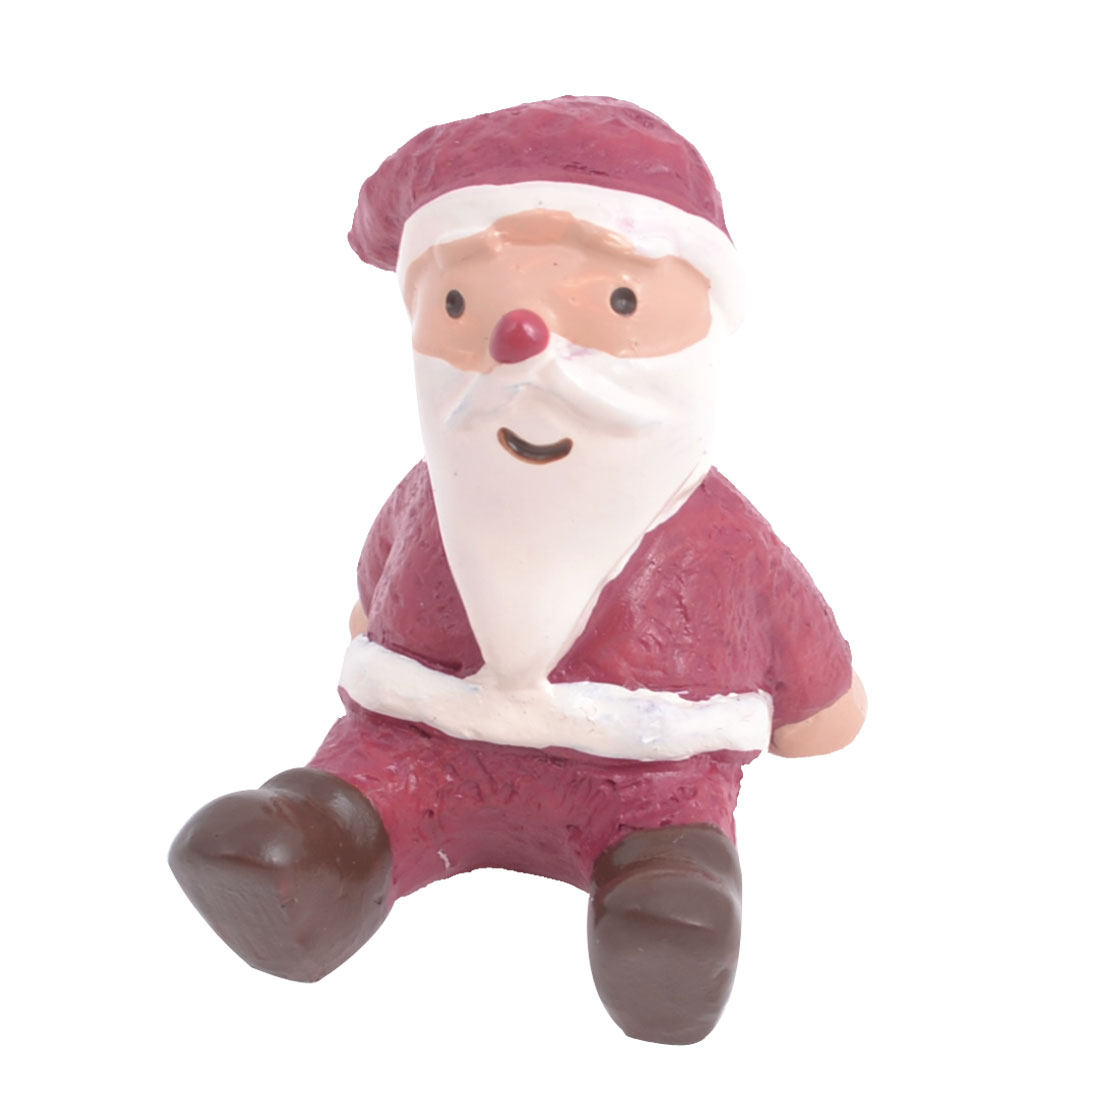 Xmas Tabletop Adorn Red White Resin Handmade Craft Santa Claus Shape Ornament